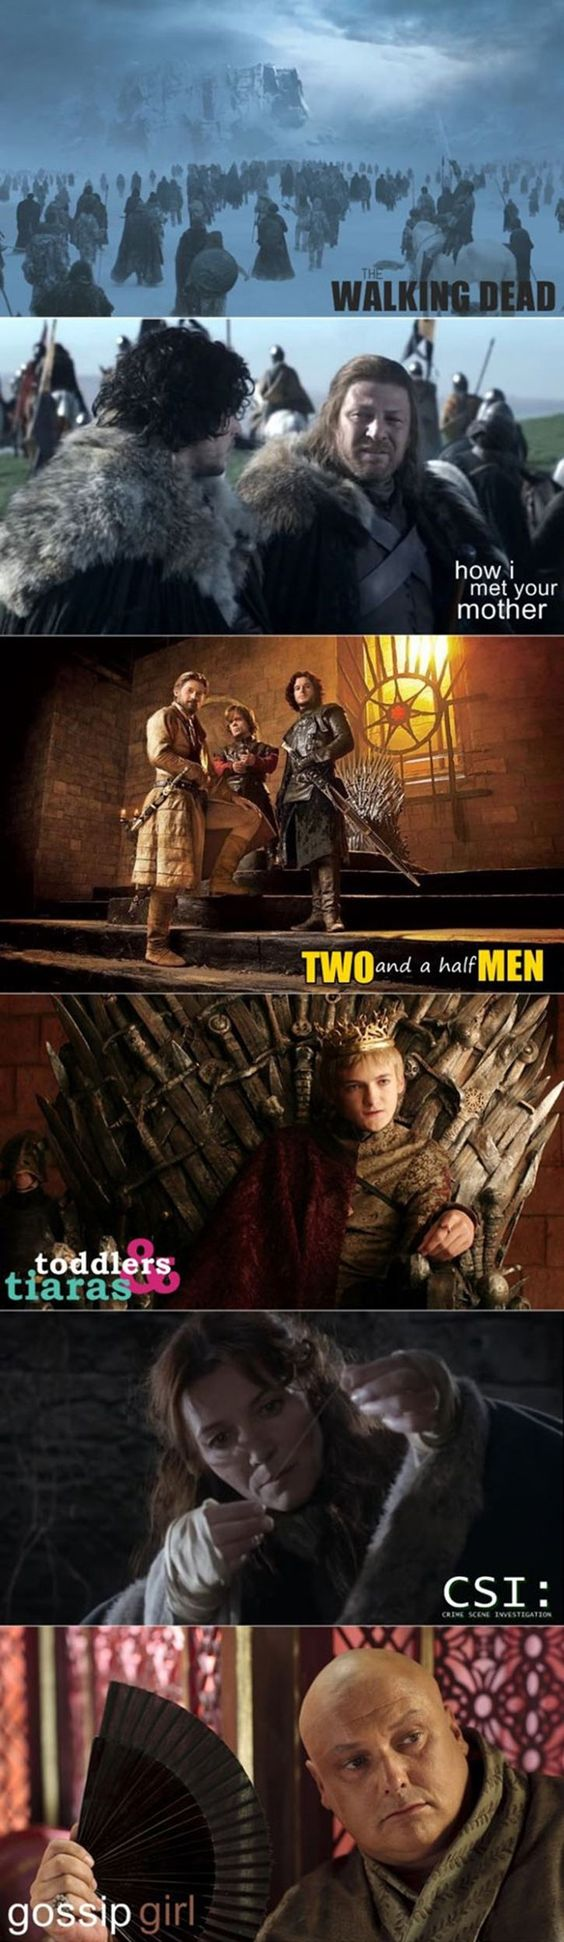 Game of Thrones reimagined as other popular TV shows; bud tag jorge in this too...HILARIOUS